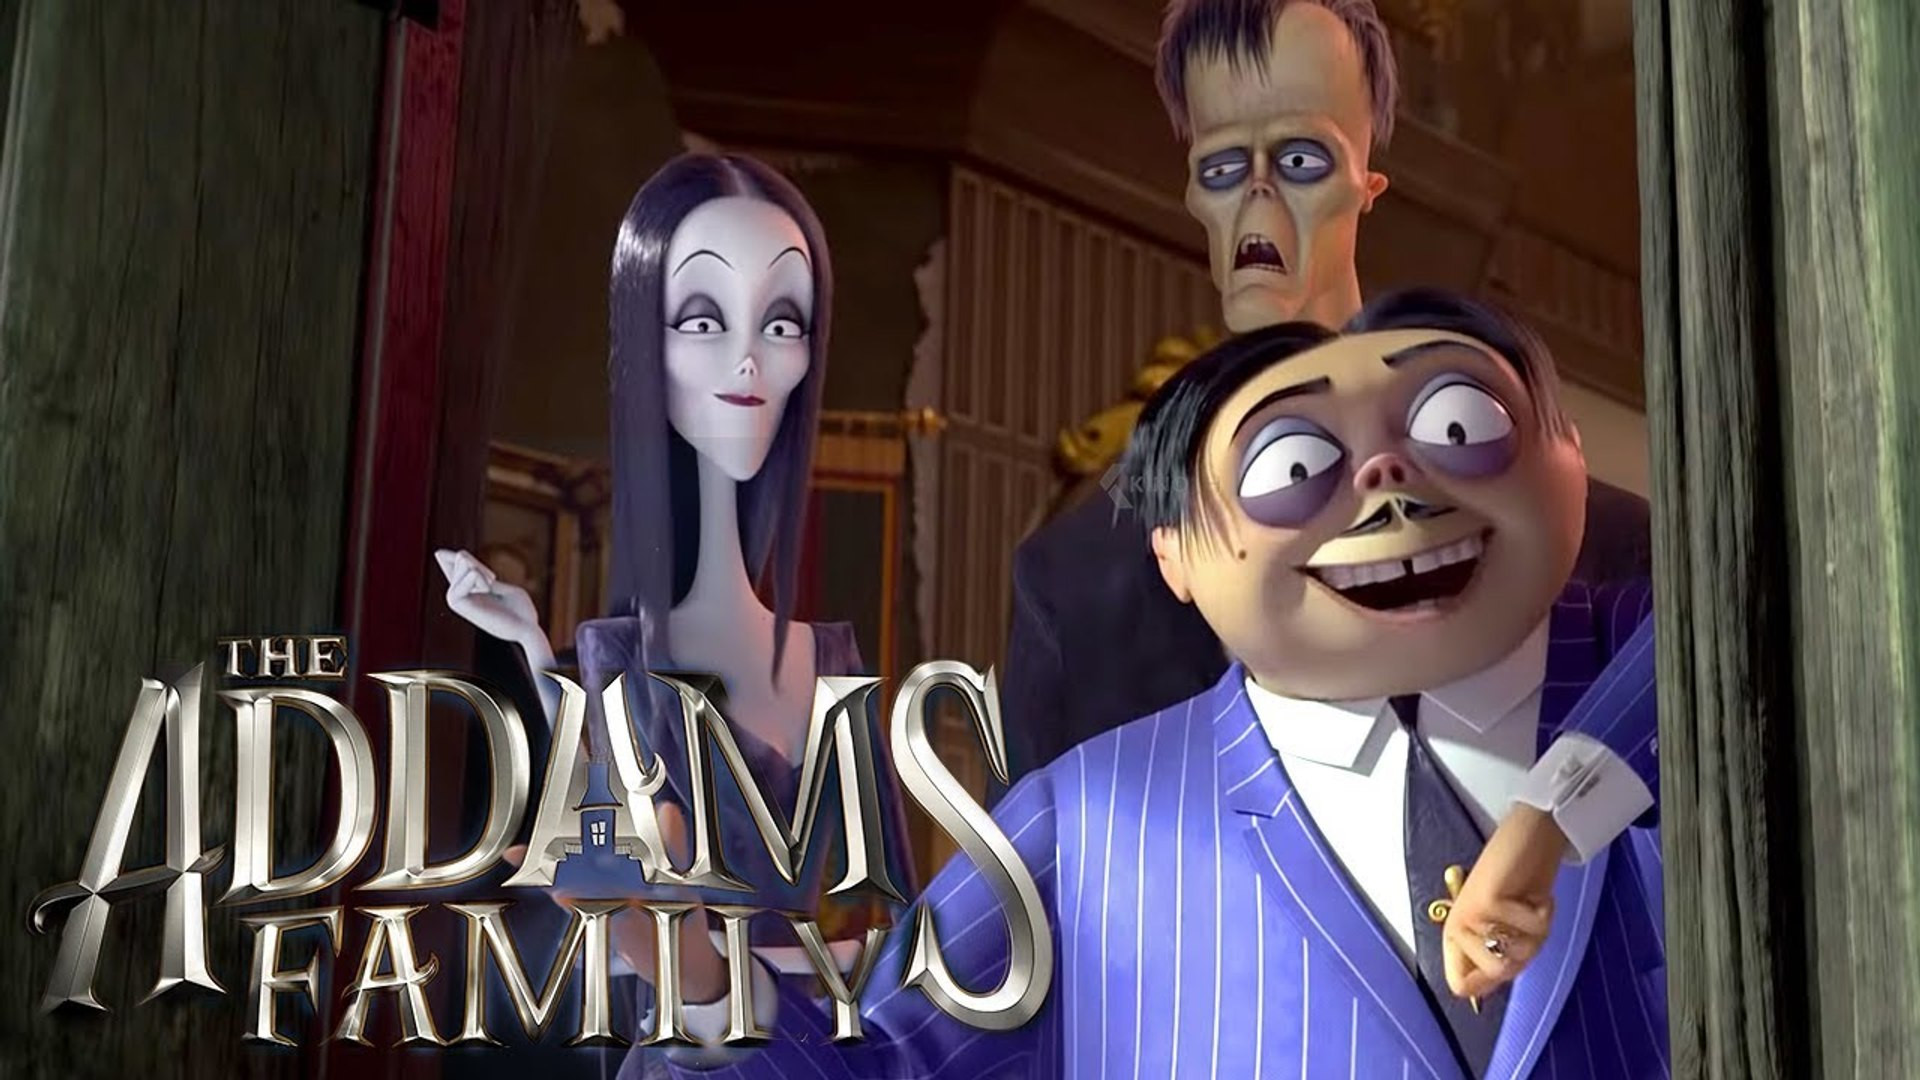 THE ADDAMS FAMILY Trailer 2 (2019) - video dailymotion